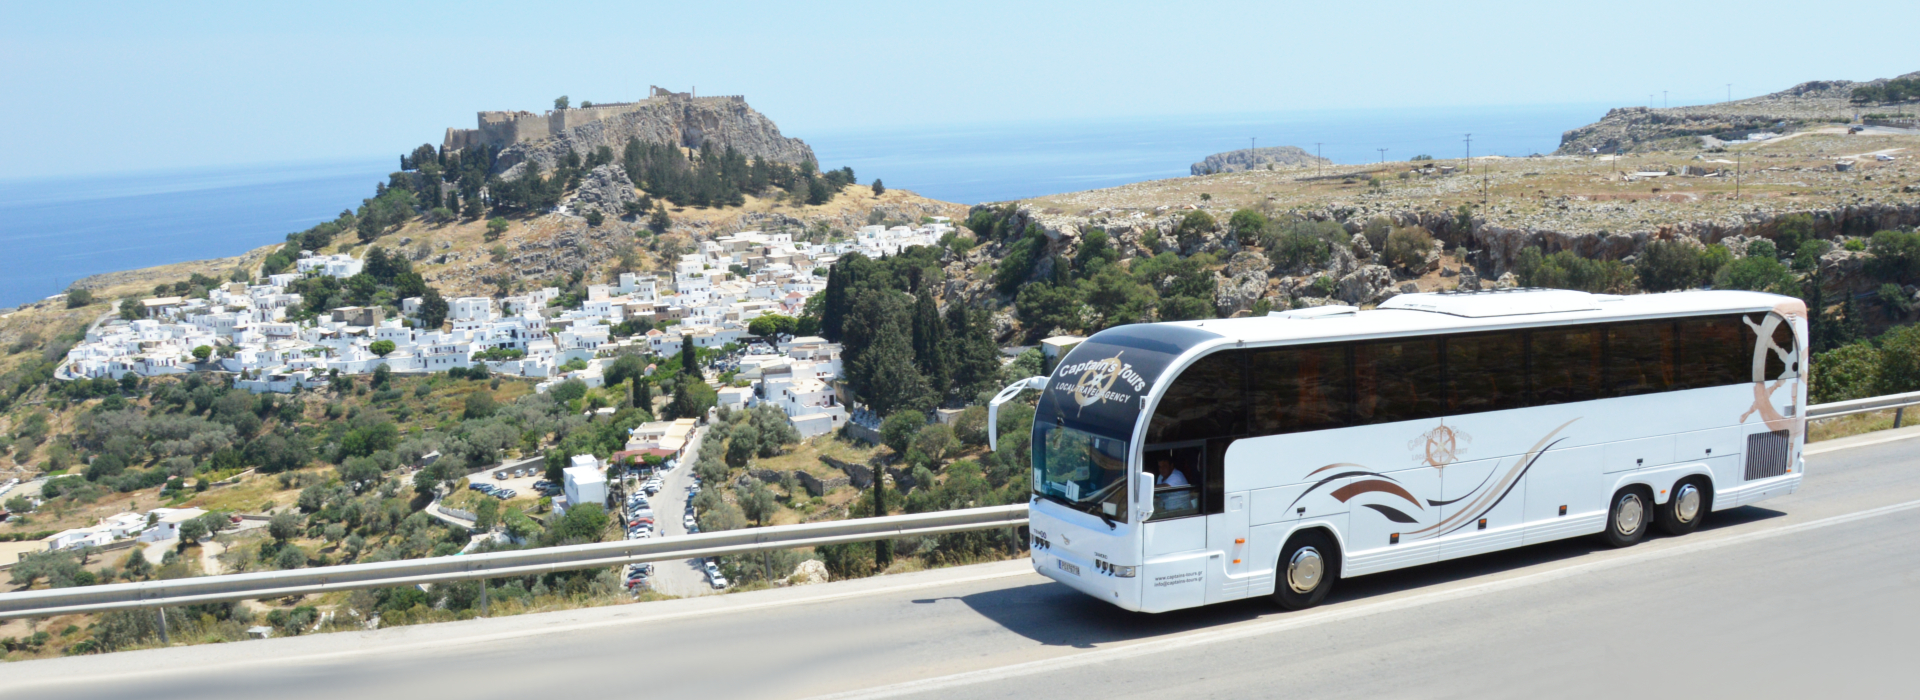 Captains Tours Escursioni Tours Rodi, Grecia